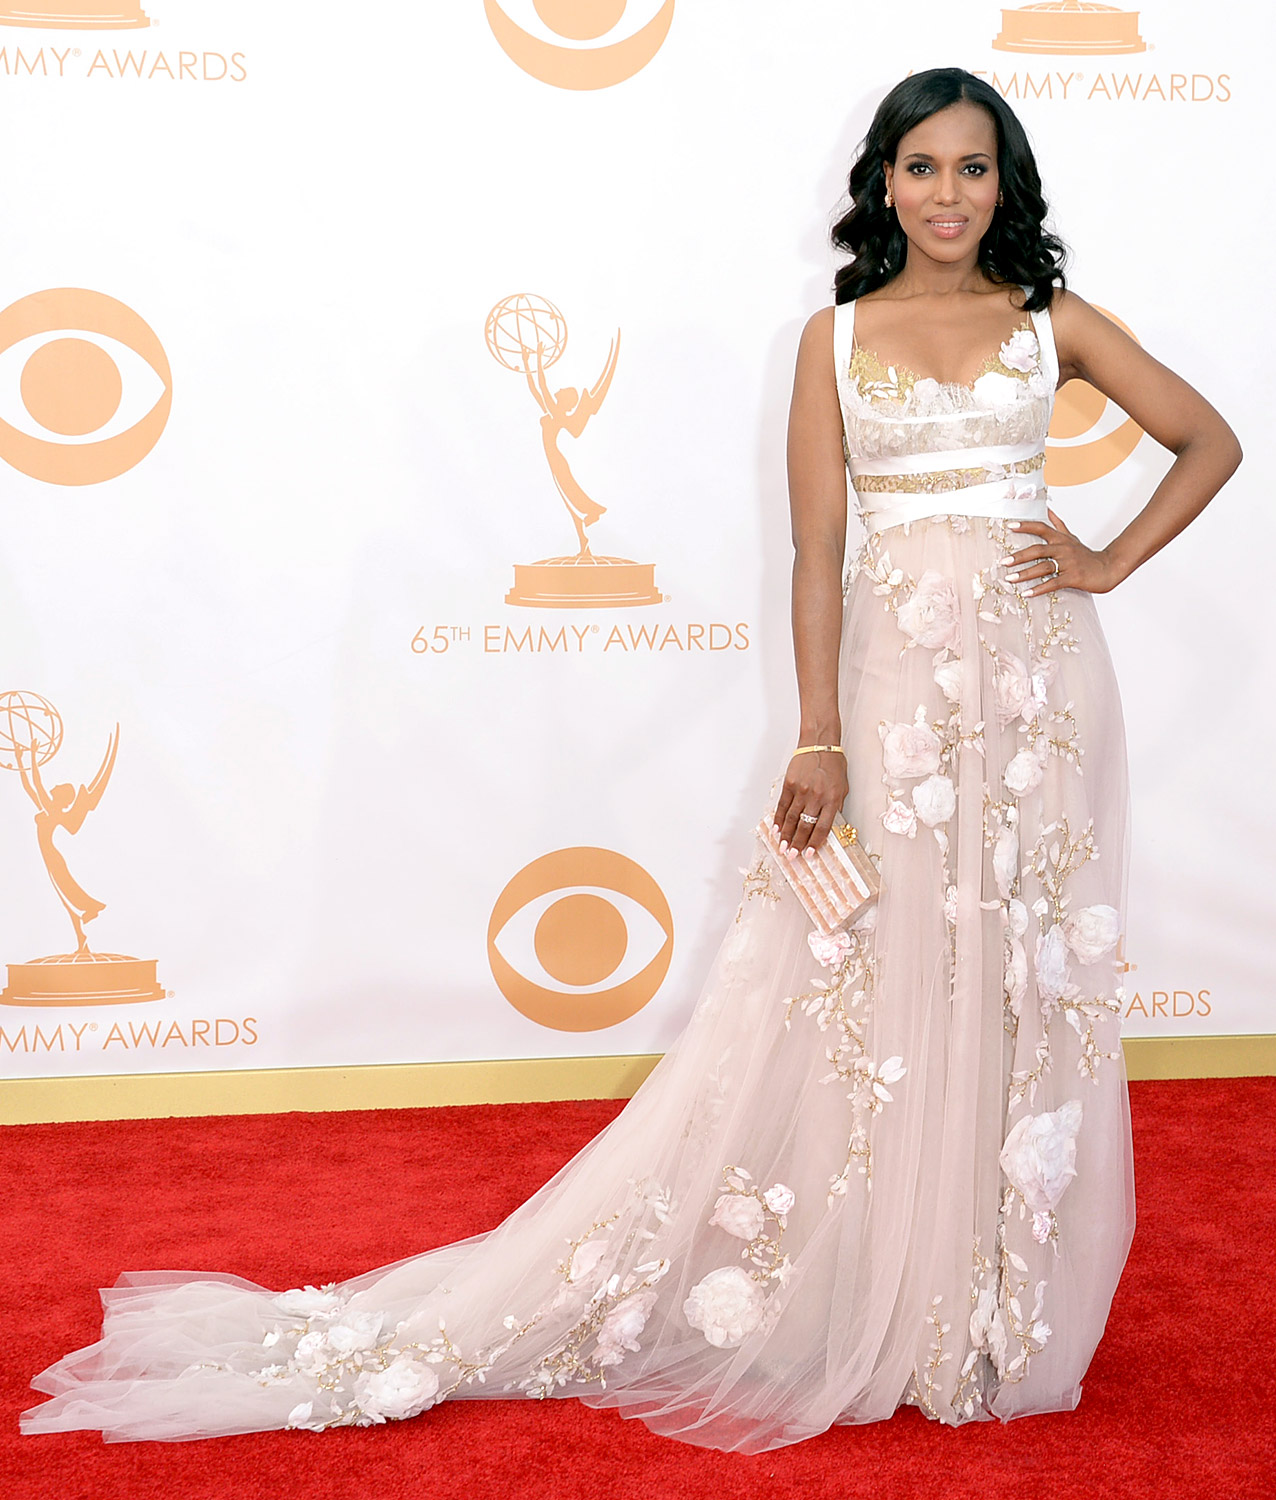 The Bronx native looked pretty in pink at the 65th Annual Primetime Emmy Awards in L.A. She donned an elegant Marchesa gown with flower beaded detail. She also accessorized with a pink clutch and gold jewelry.